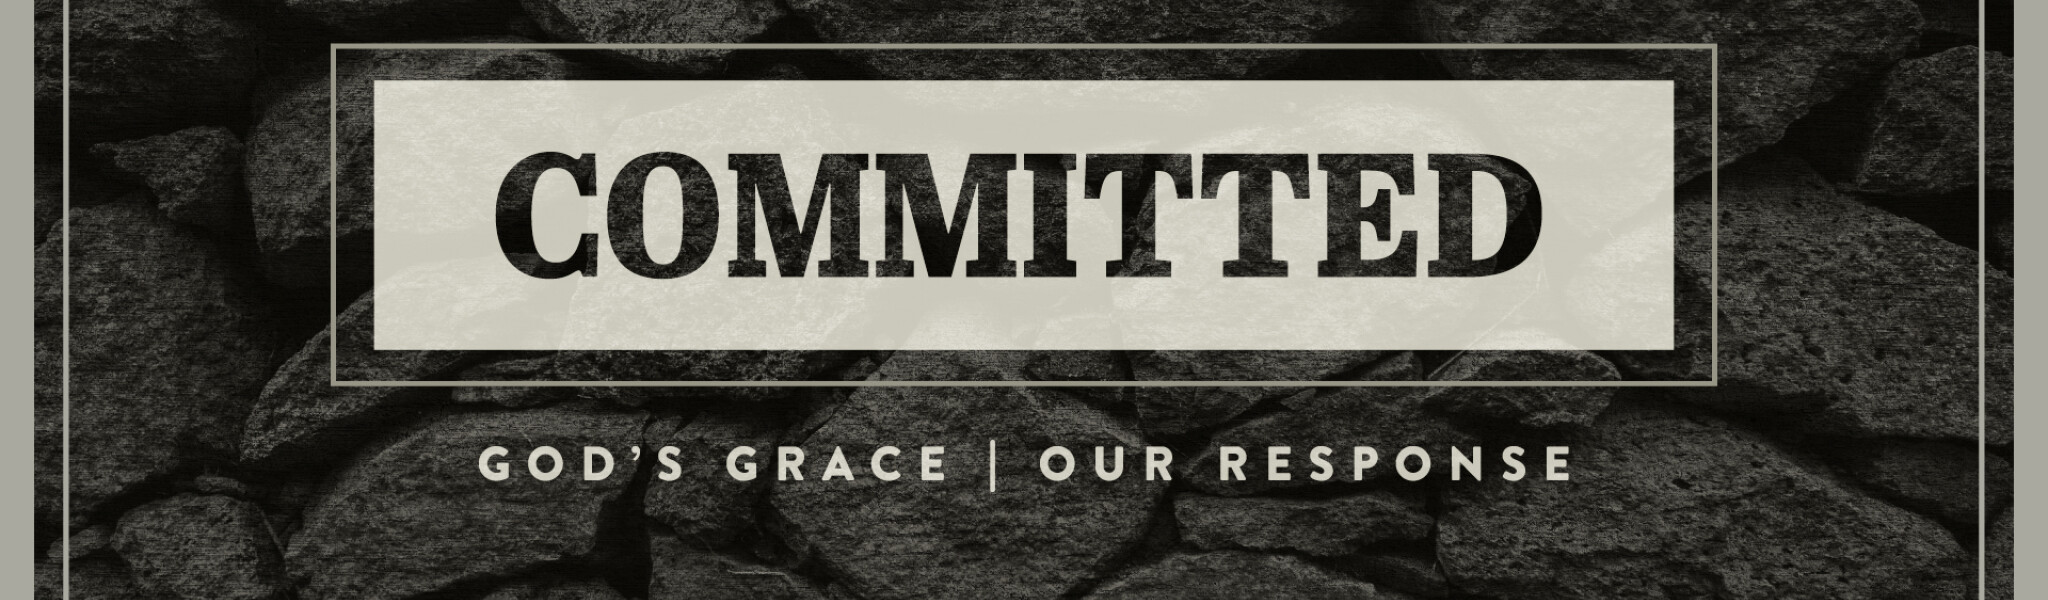 Committed | Cornerstone Lutheran Church | Cornerstone Lutheran Church